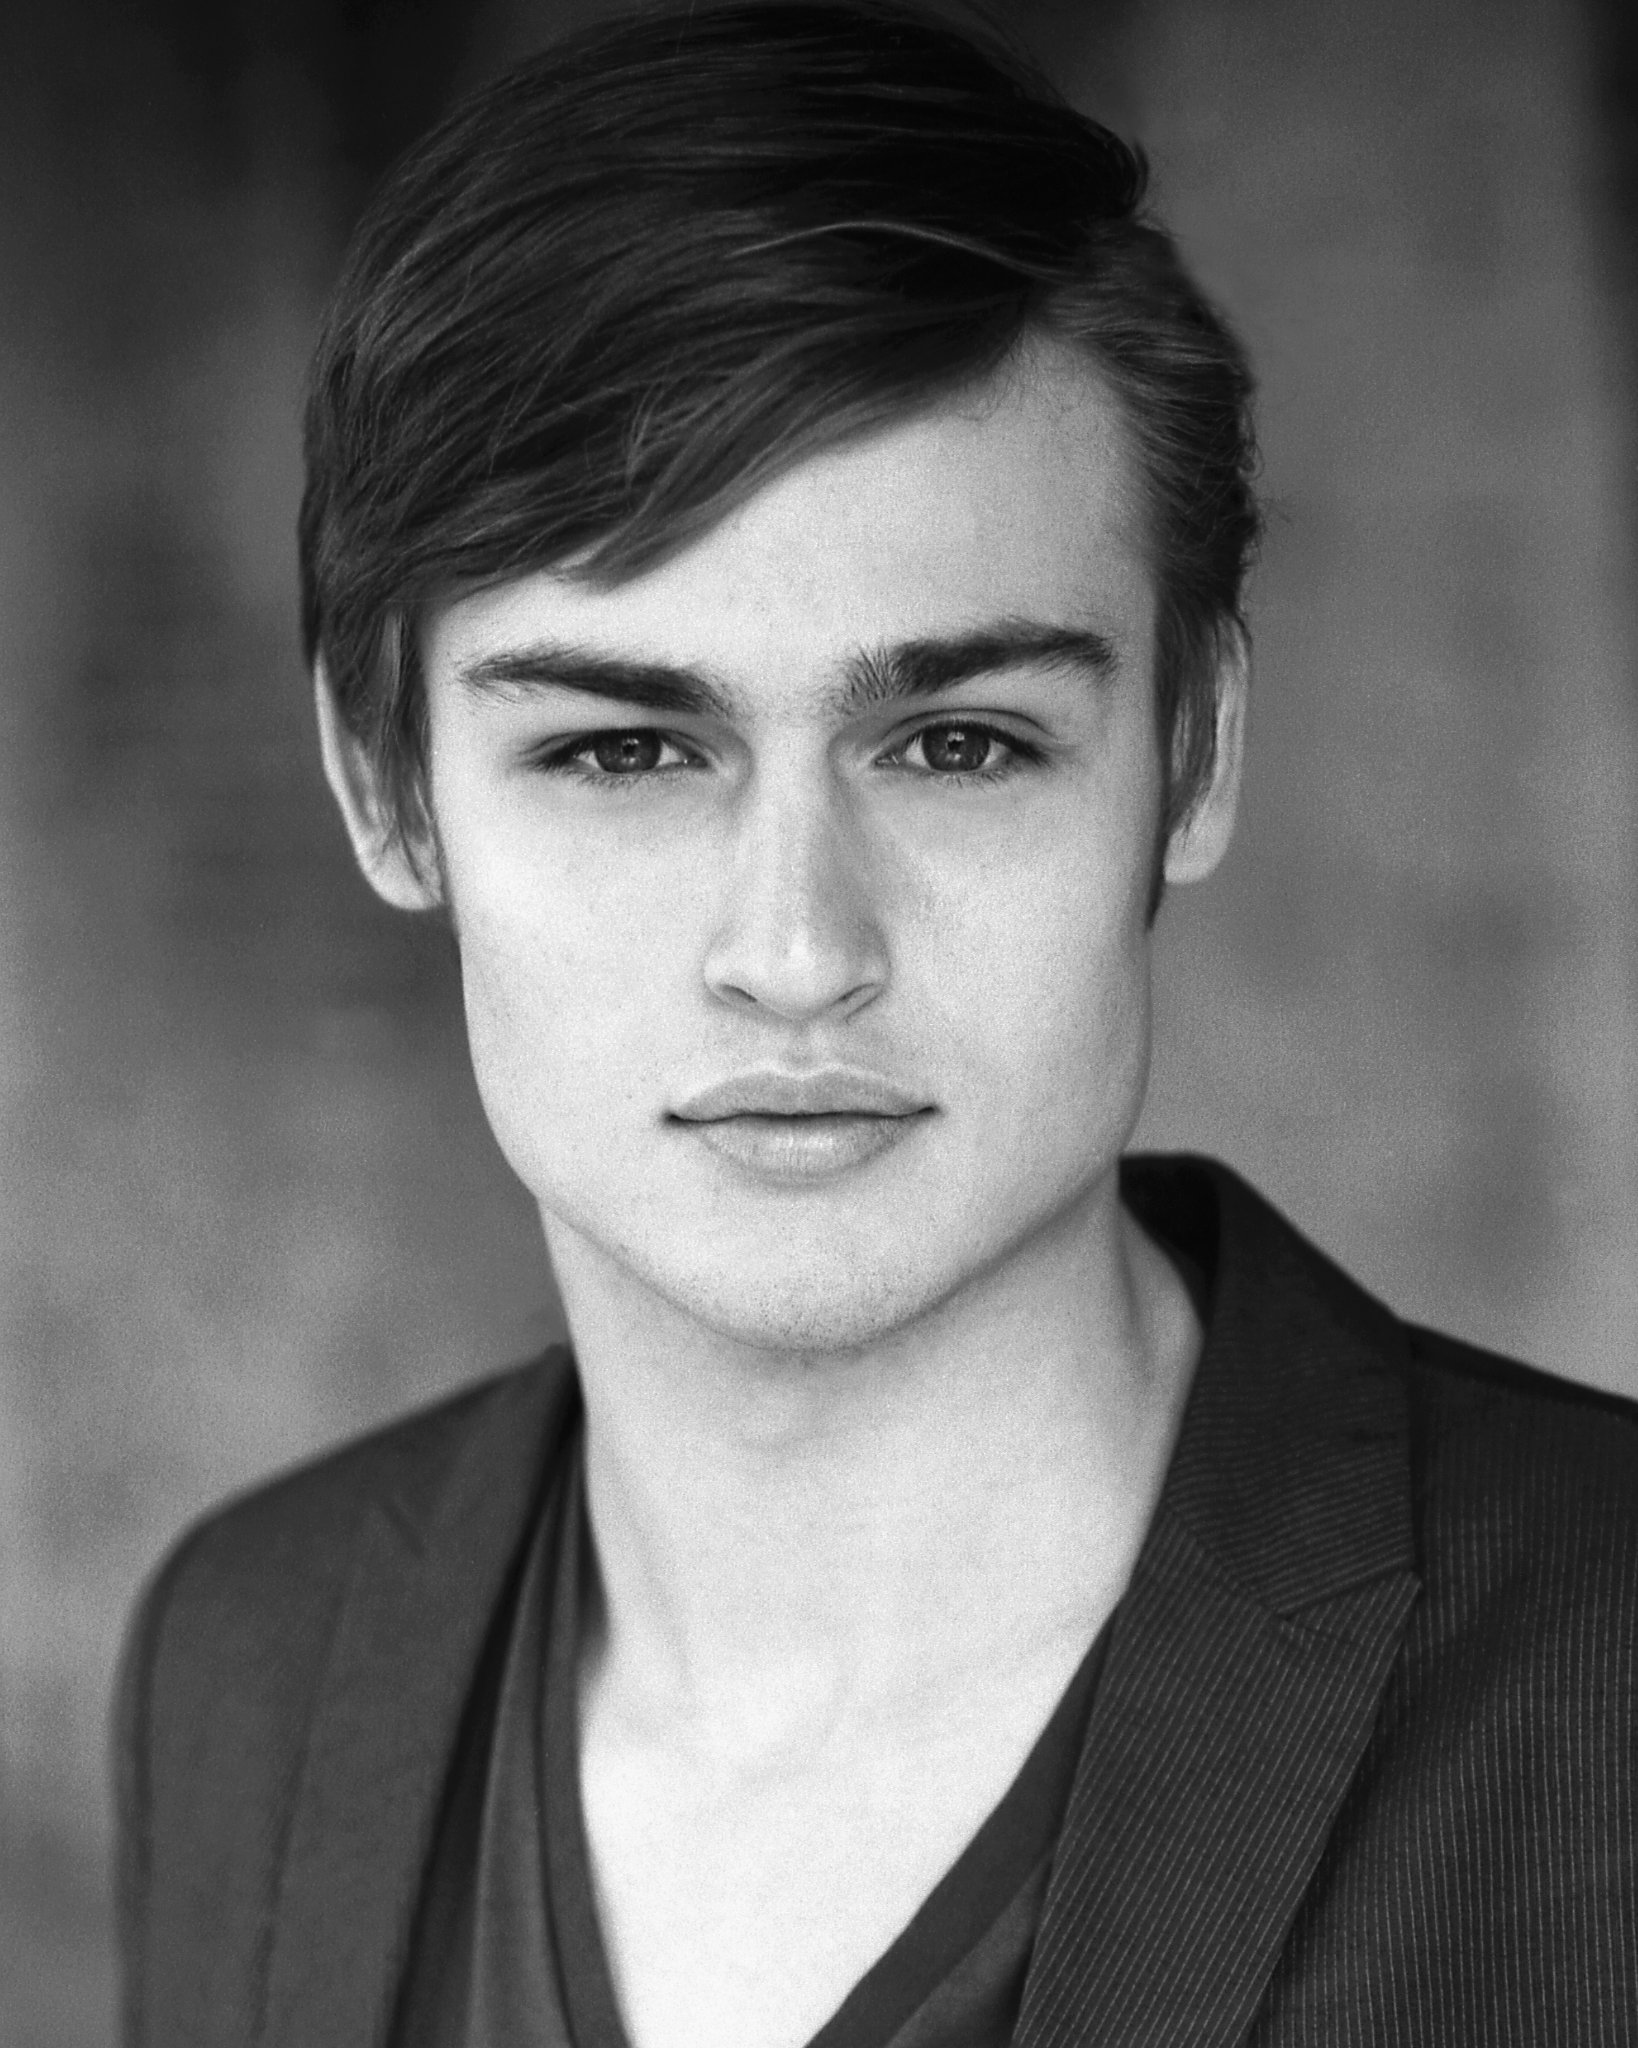 HQ Douglas Booth Wallpapers | File 473.74Kb